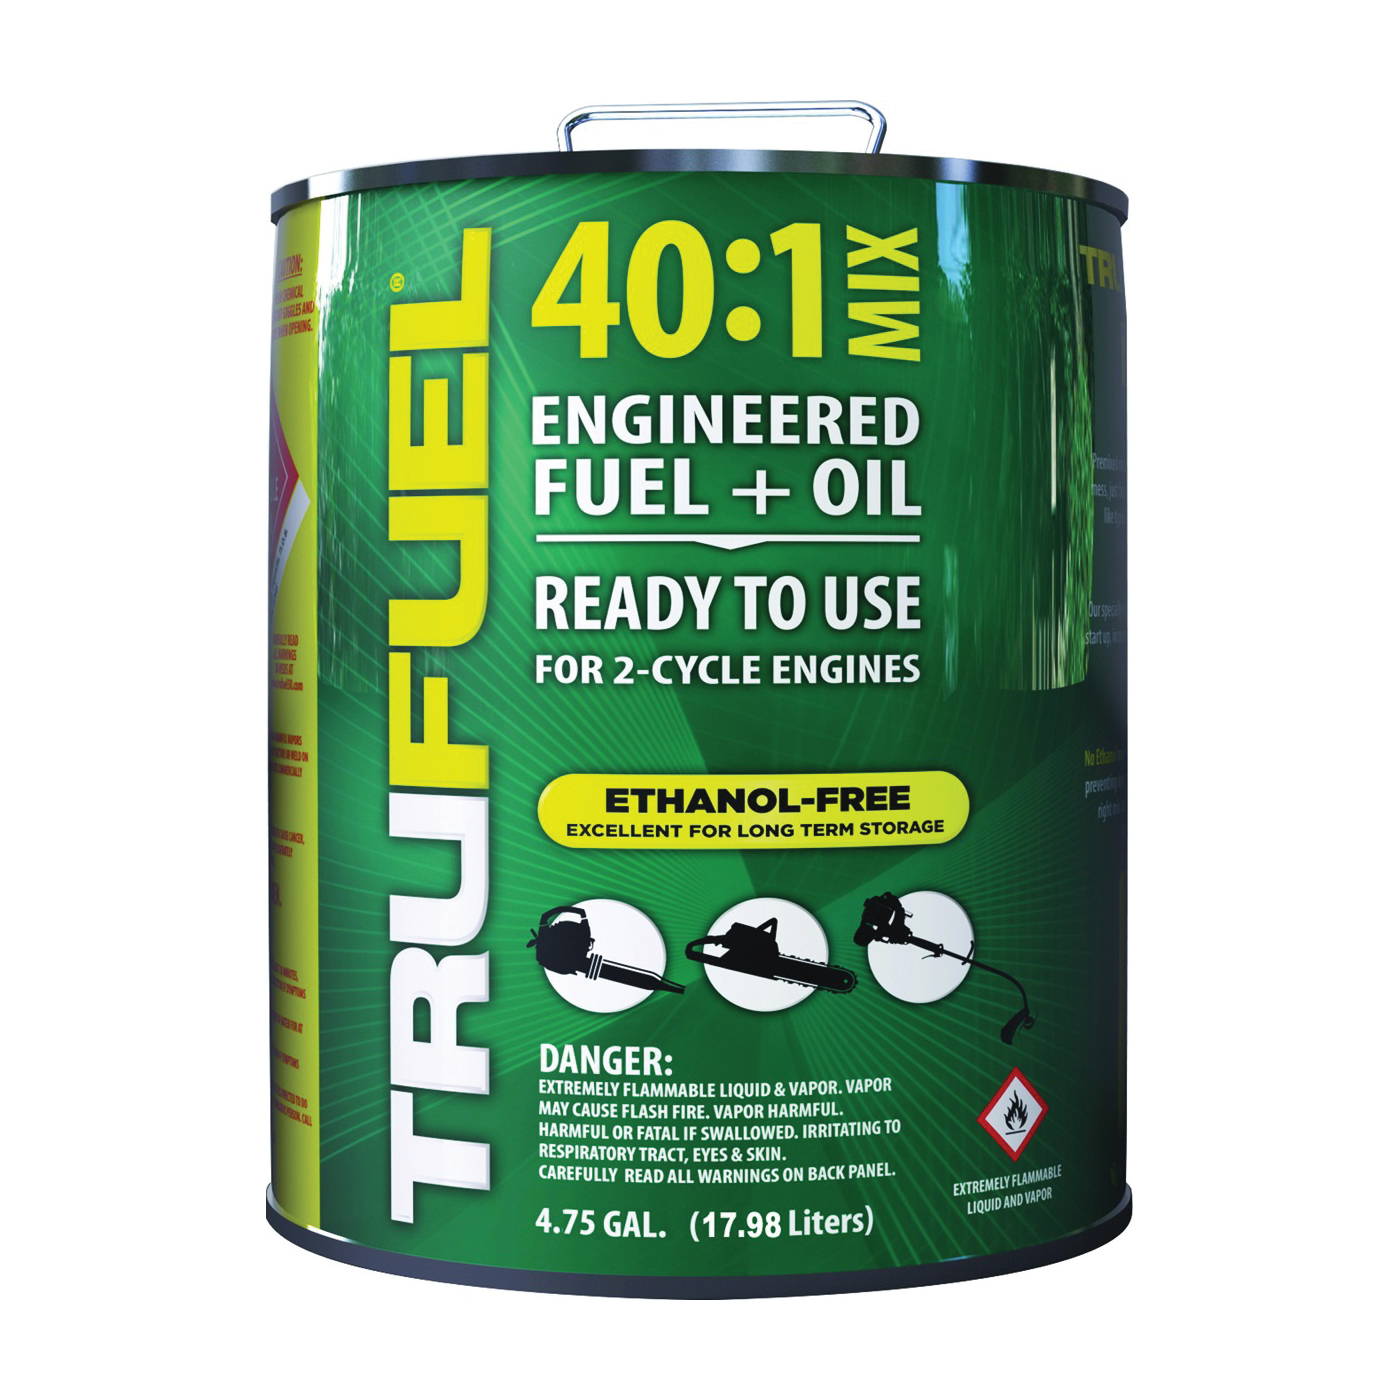 Picture of TRUFUEL 6525514 Pre-Mixed Fuel, Liquid, Hydrocarbon, Green, 4.75 gal Package, Can